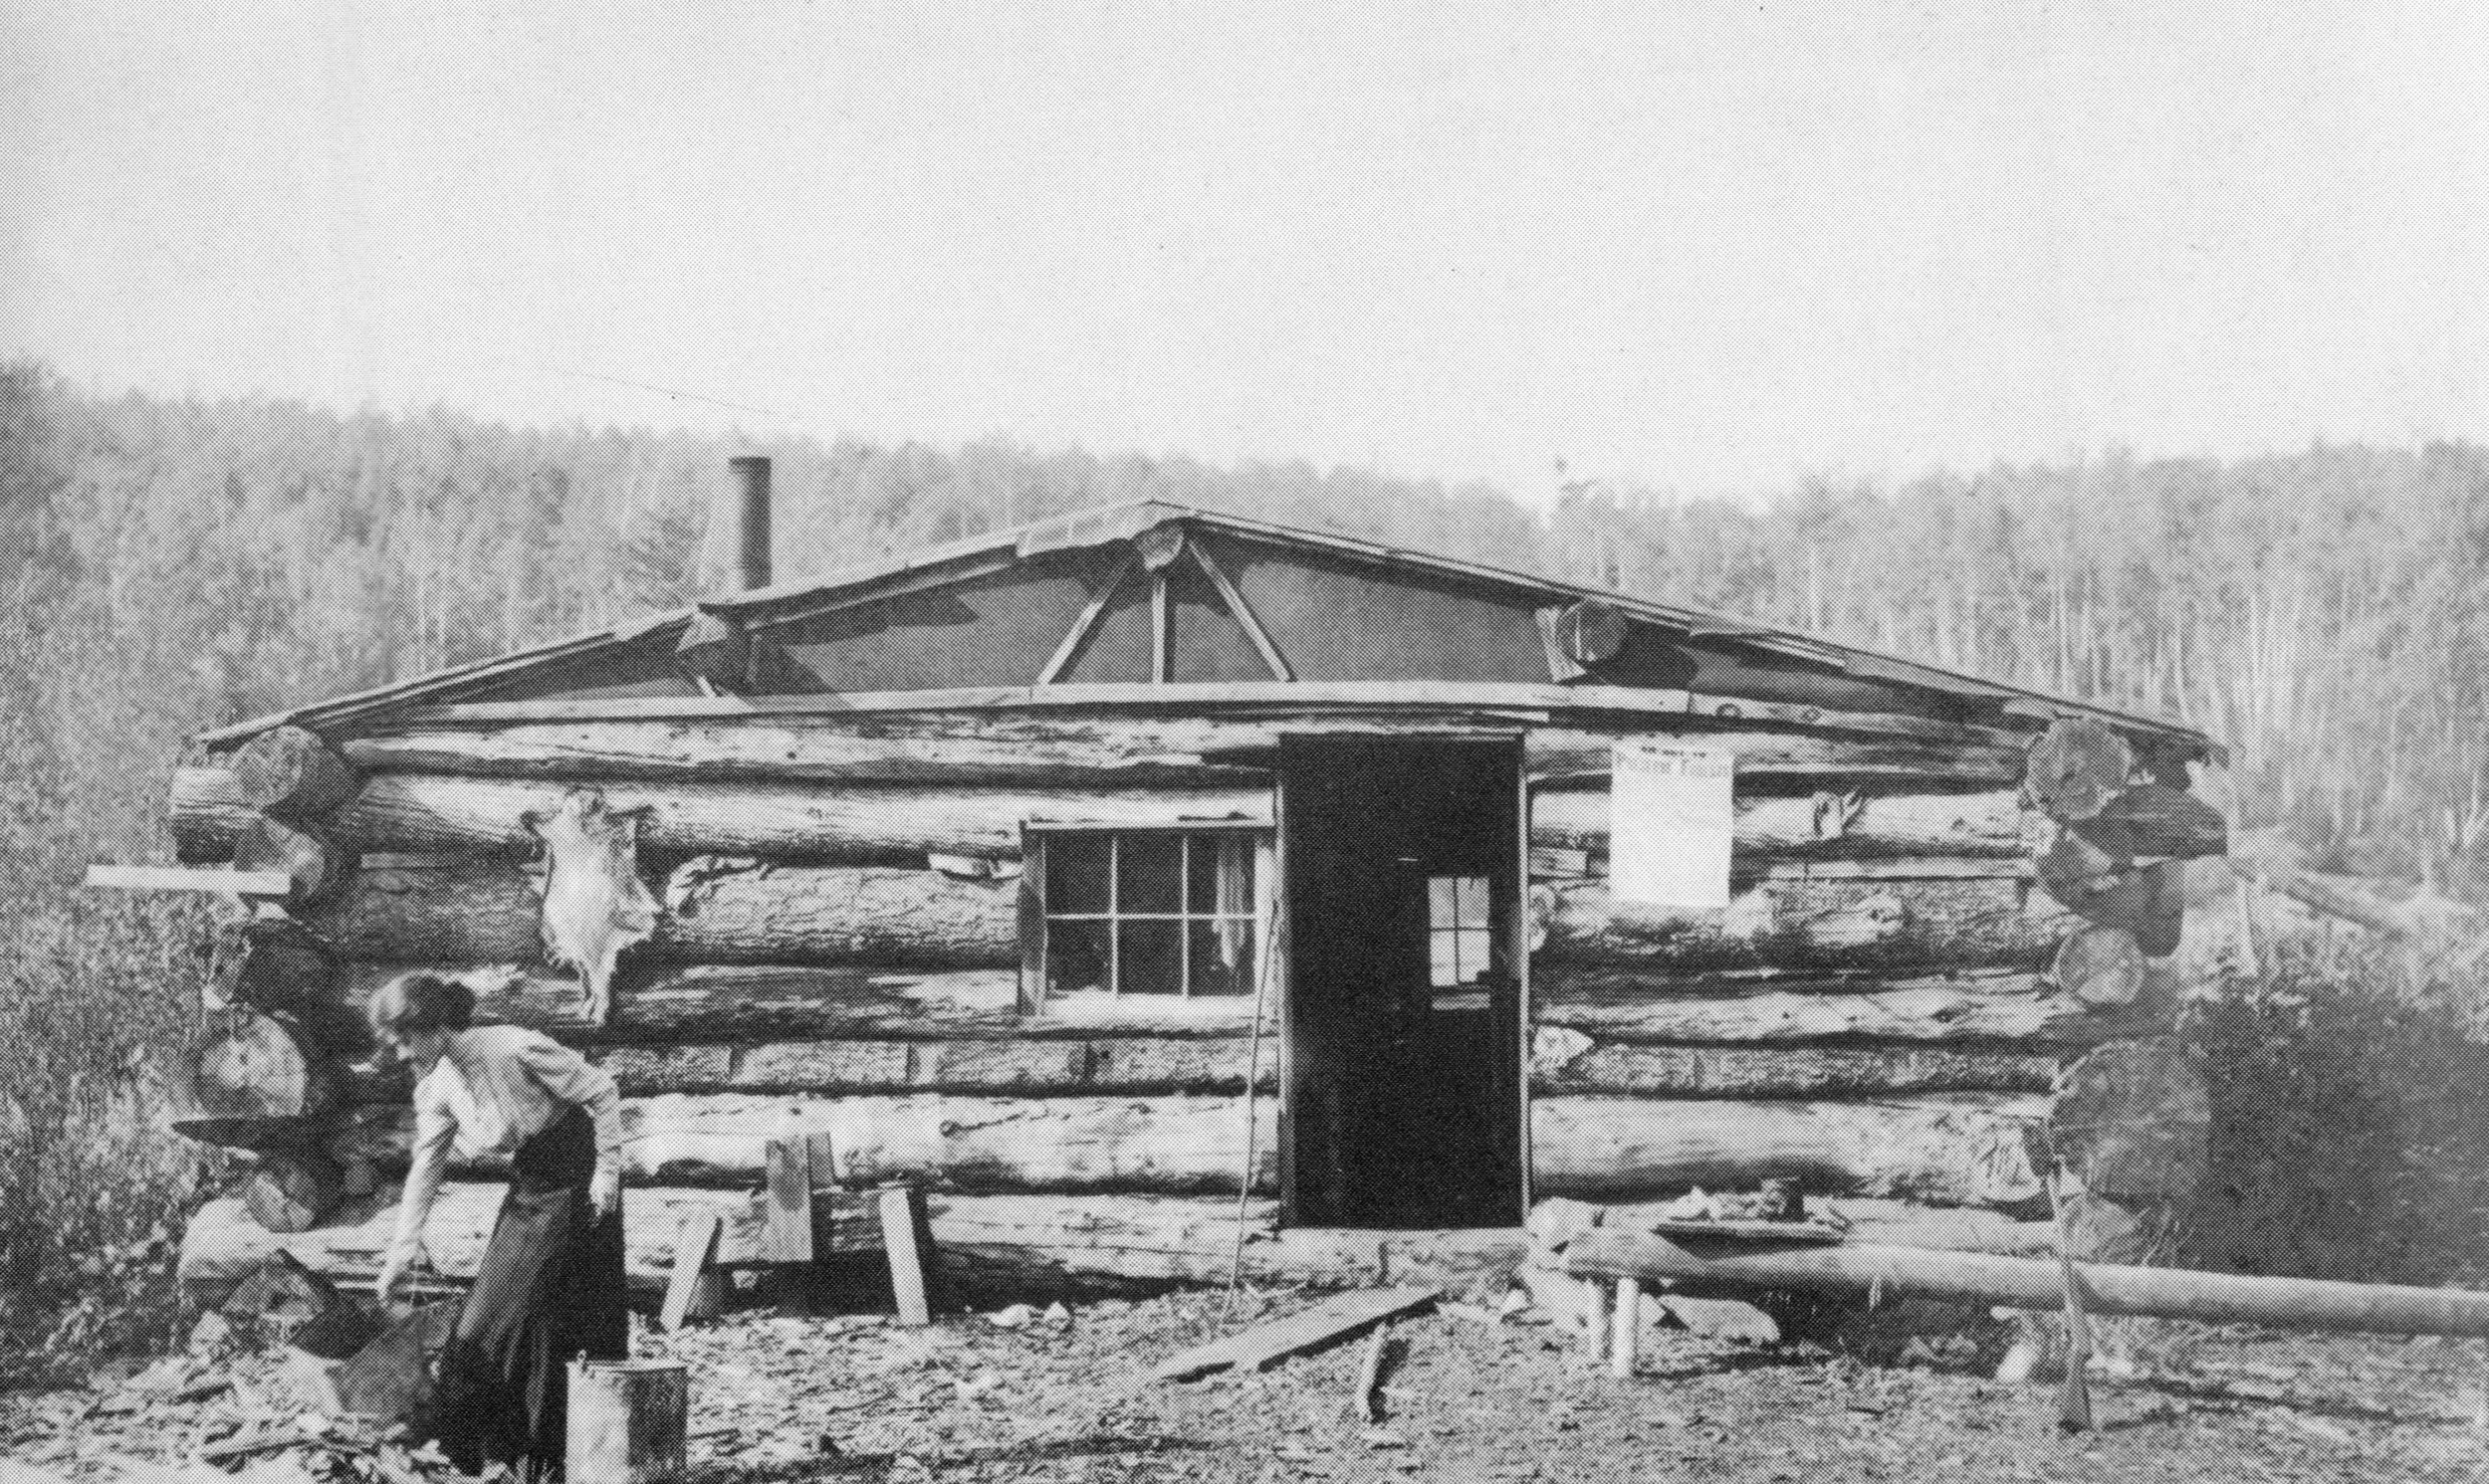 Ethel Curwood at their honeymoon cabin which they built and lived in for a year.